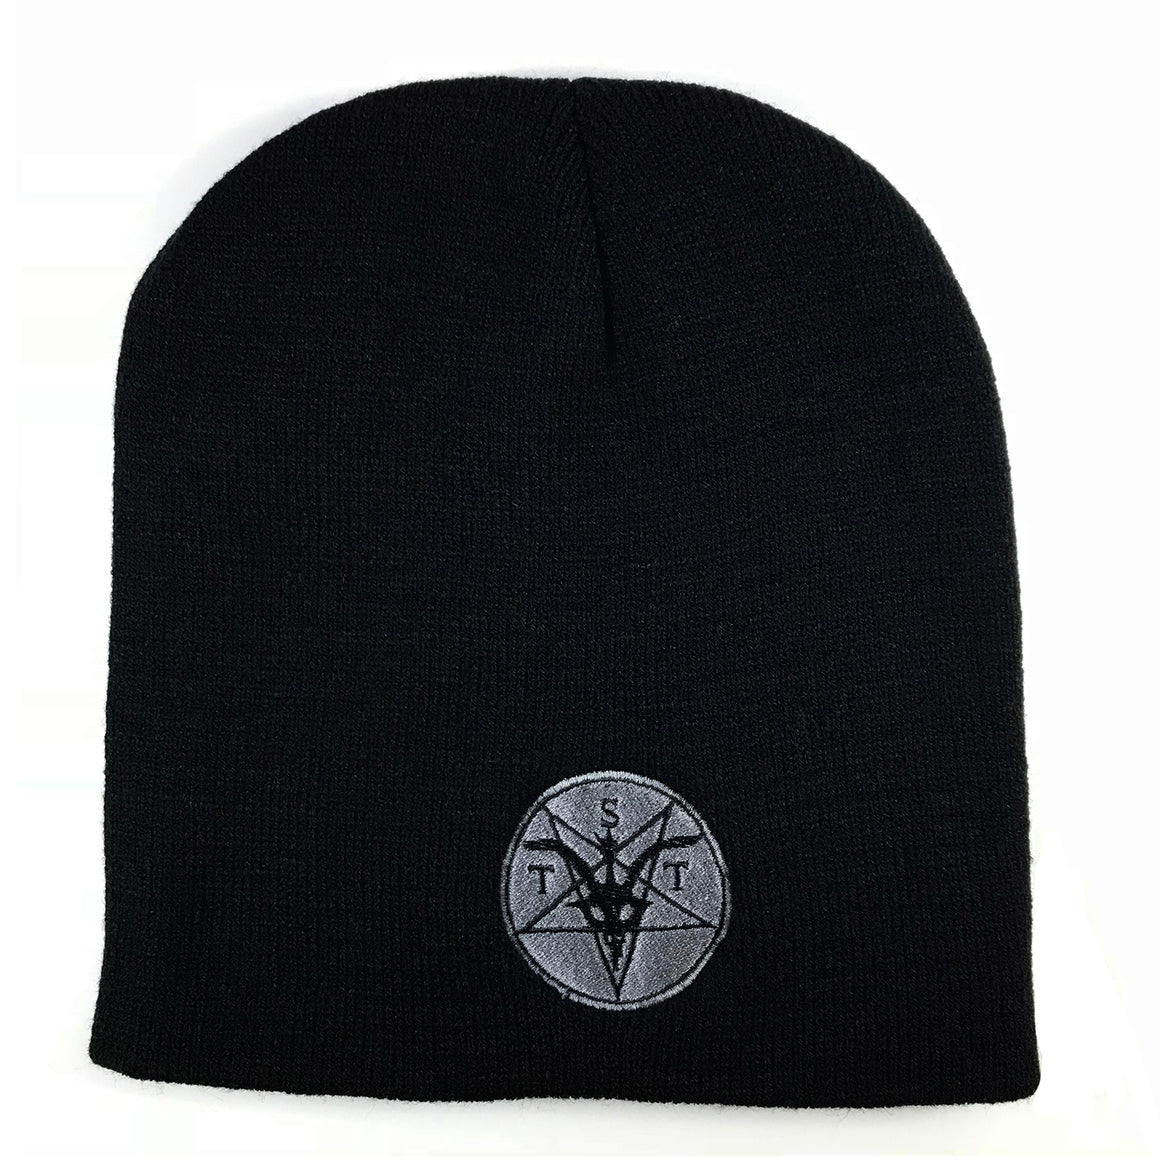 TST logo knit hat Gray Logo